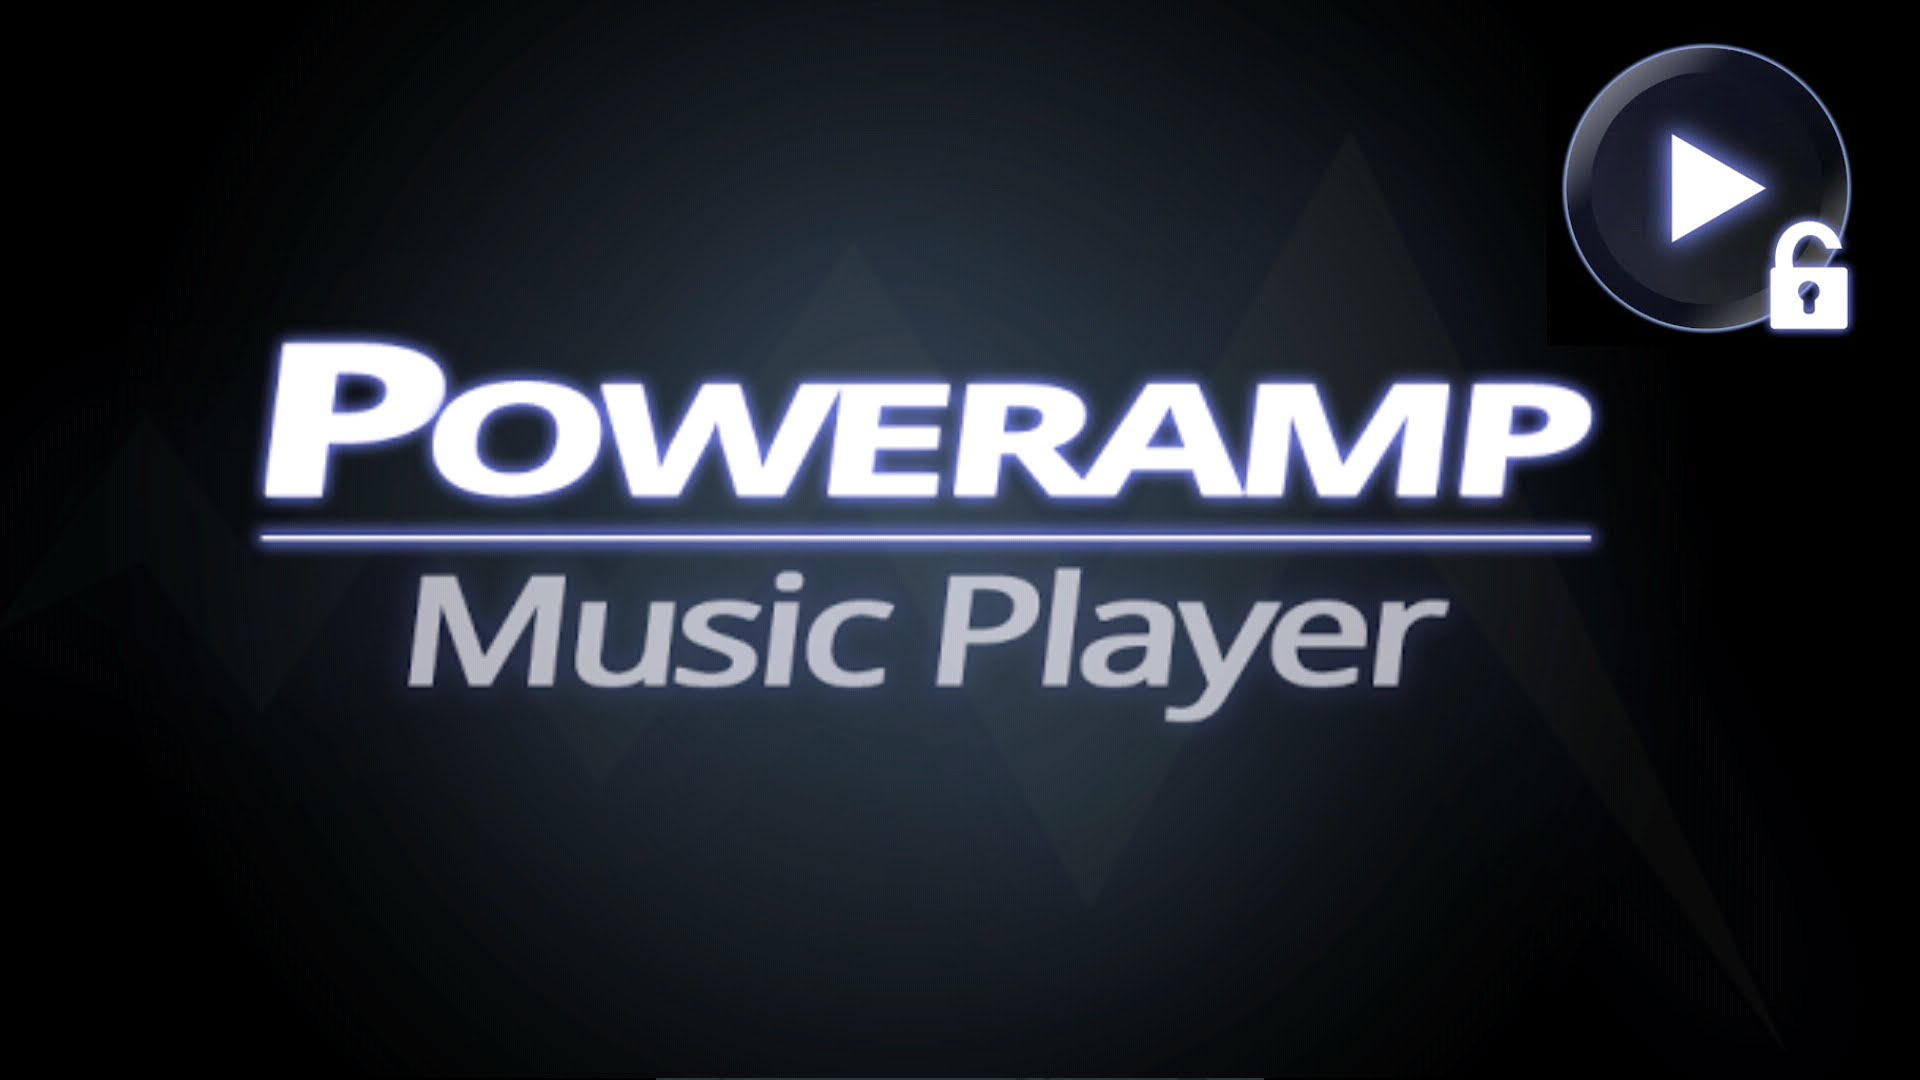 POWERAMP MUSIC PLAYER- Best music app for android